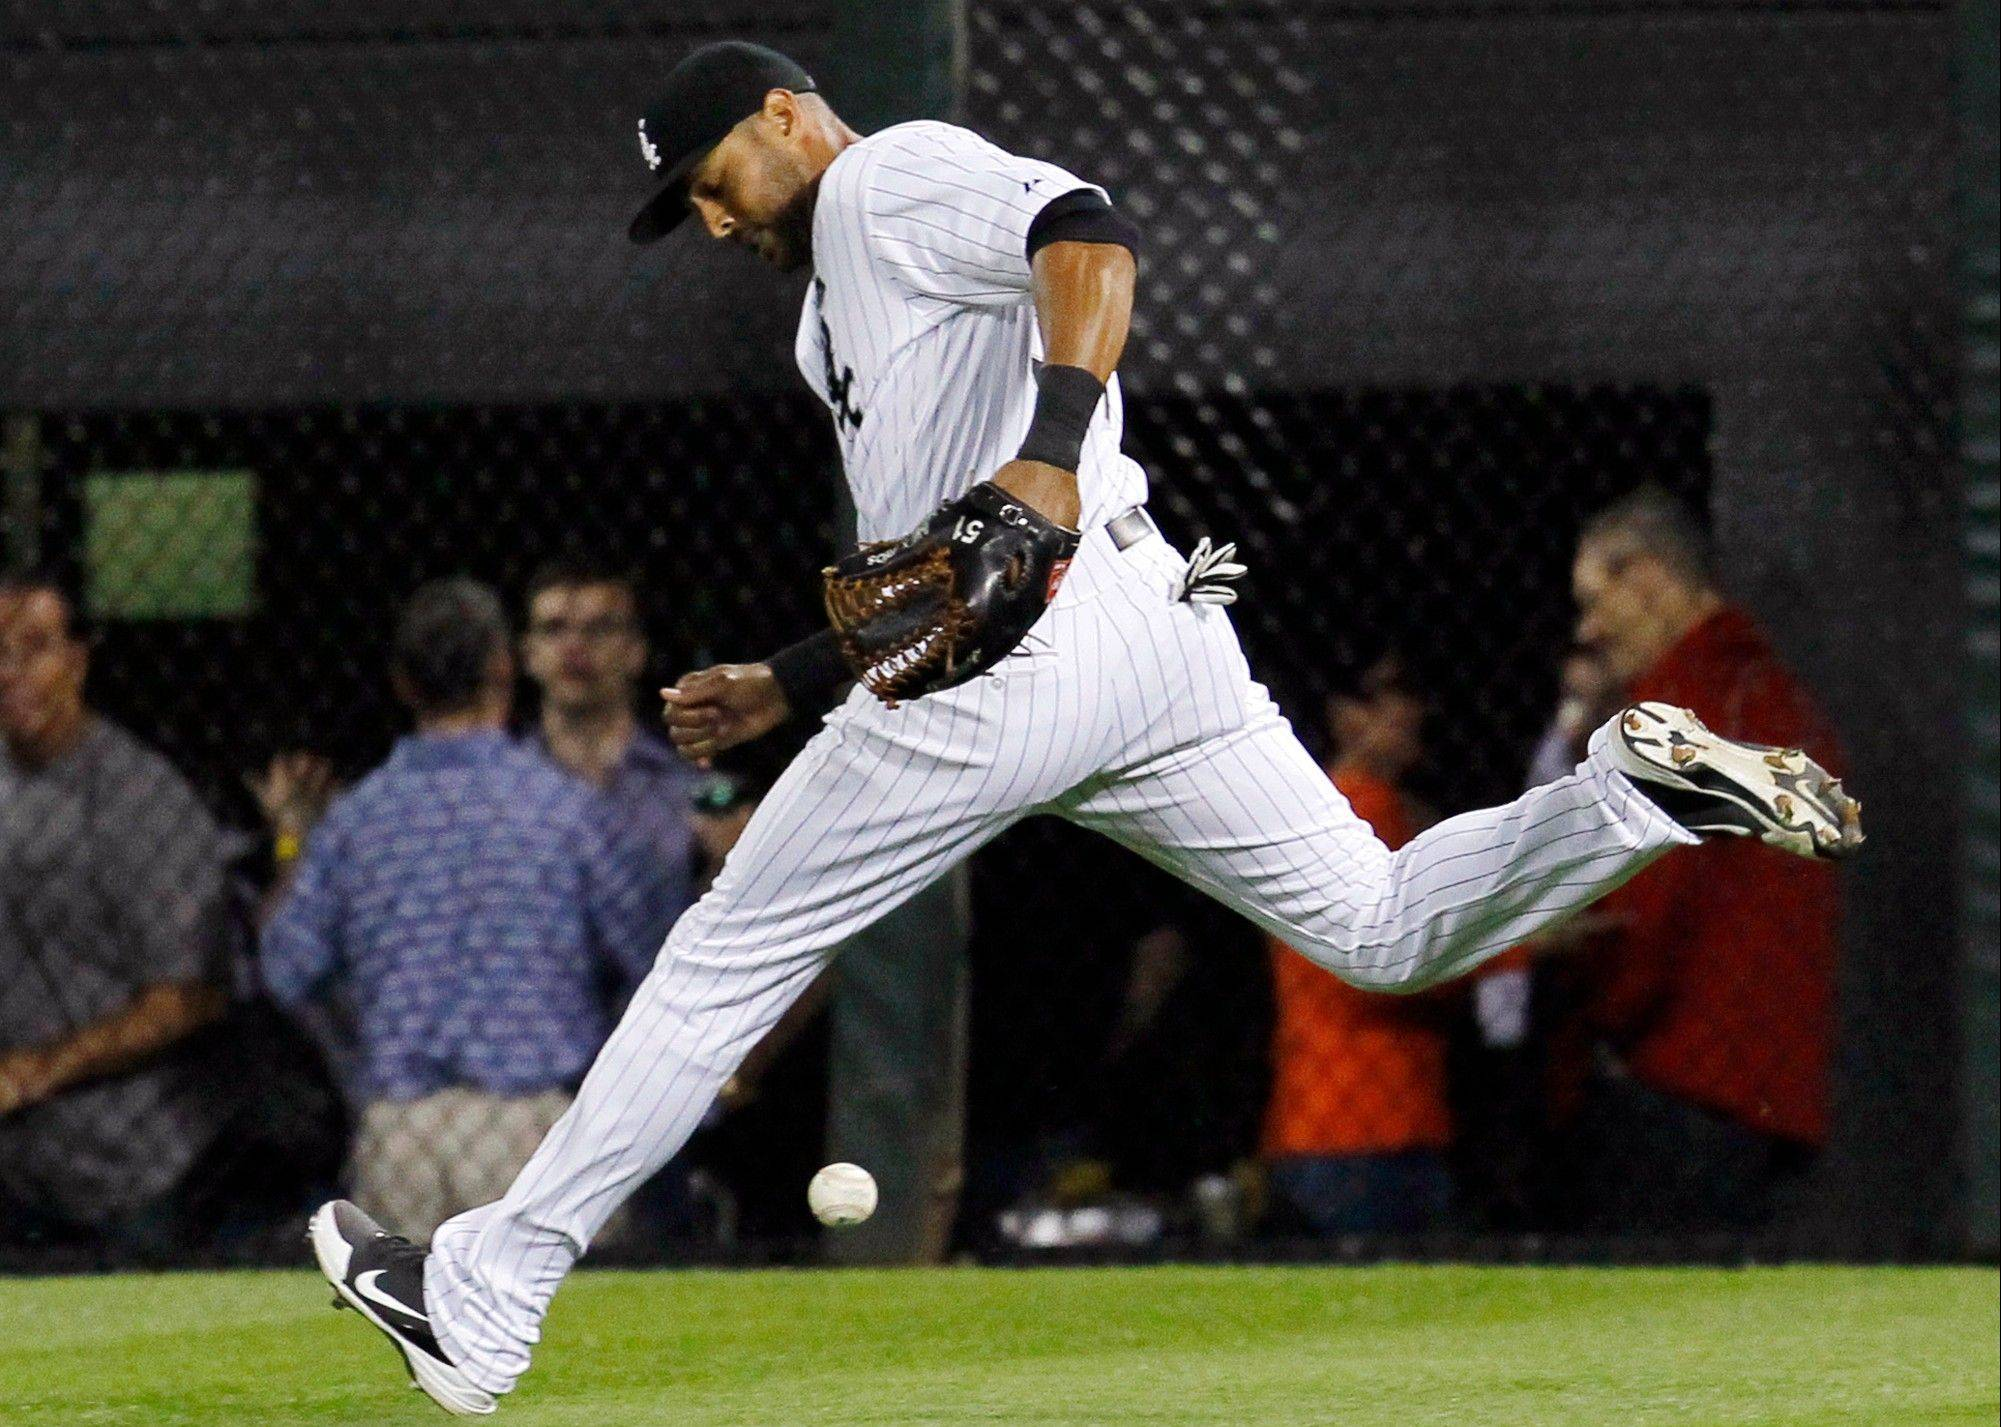 It was one of those nights for the White Sox and right fielder Alex Rios, who drops a fly ball by hit by the Blue Jays' Kelly Johnson in the eighth inning Wednesday night at U.S. Cellular Field.